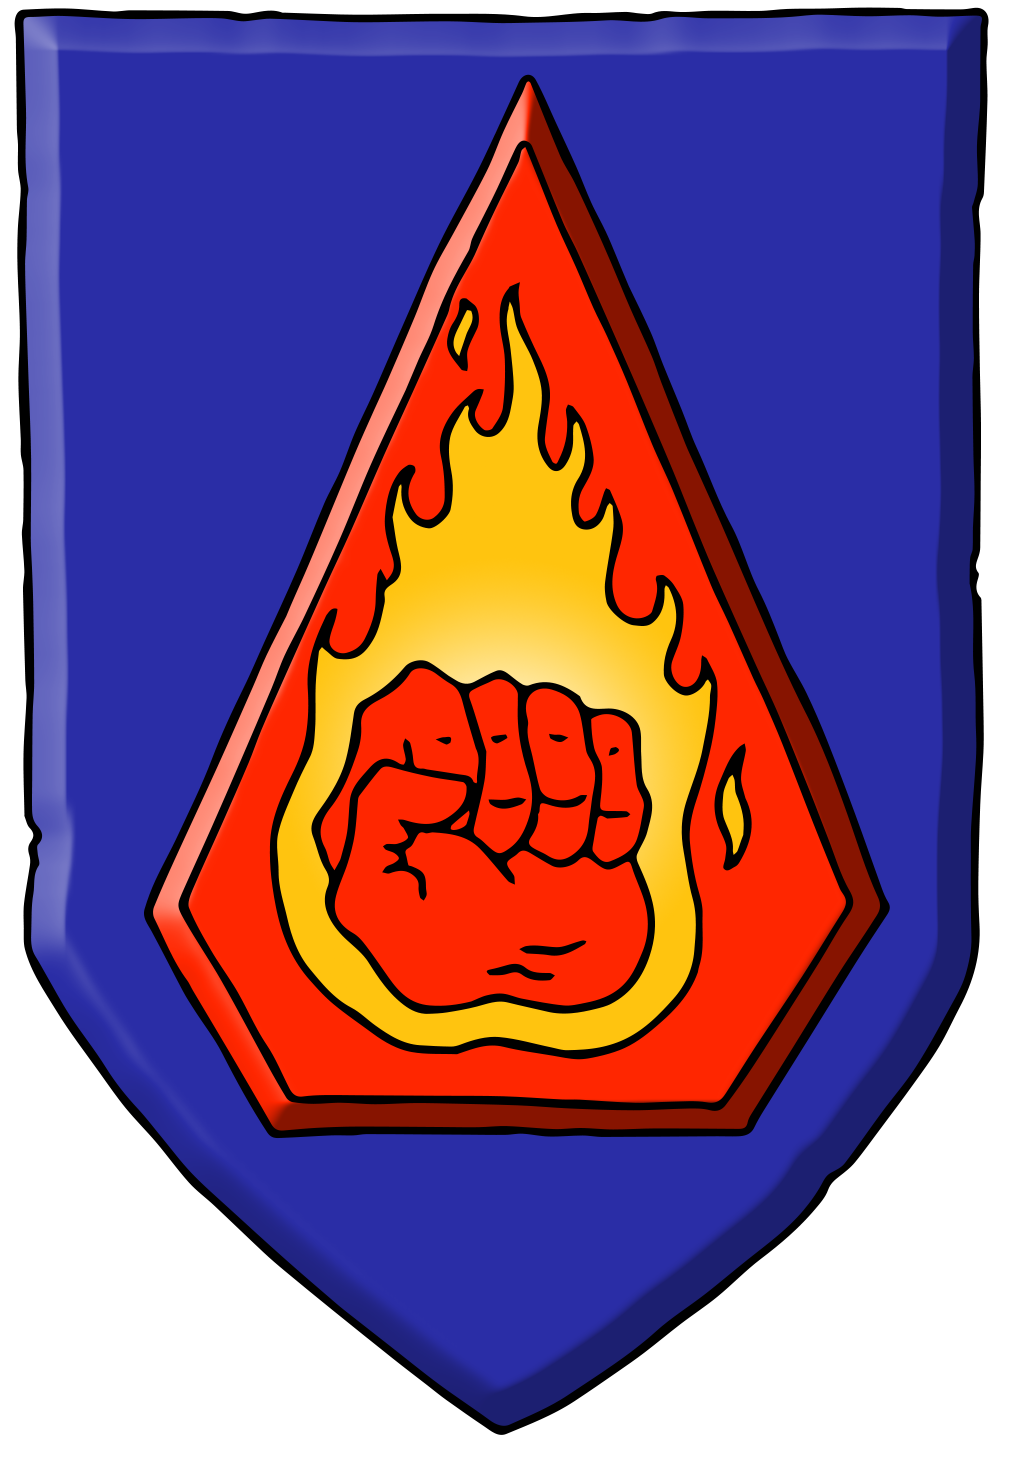 Category organizations in the. Fist clipart militant